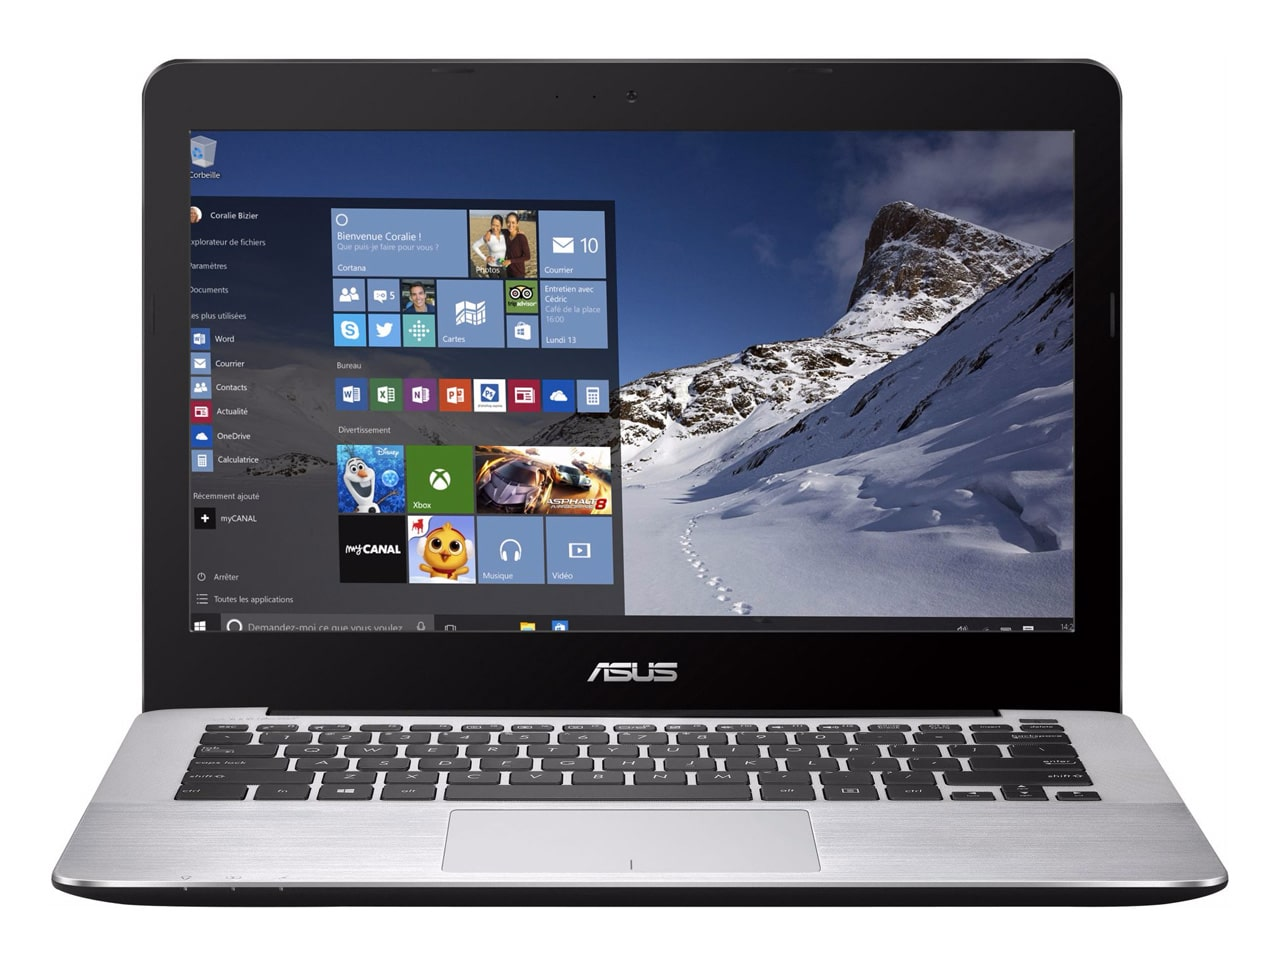 asus r301la fn237t vente flash 479 ultraportable 13 pouces mat ssd laptopspirit. Black Bedroom Furniture Sets. Home Design Ideas